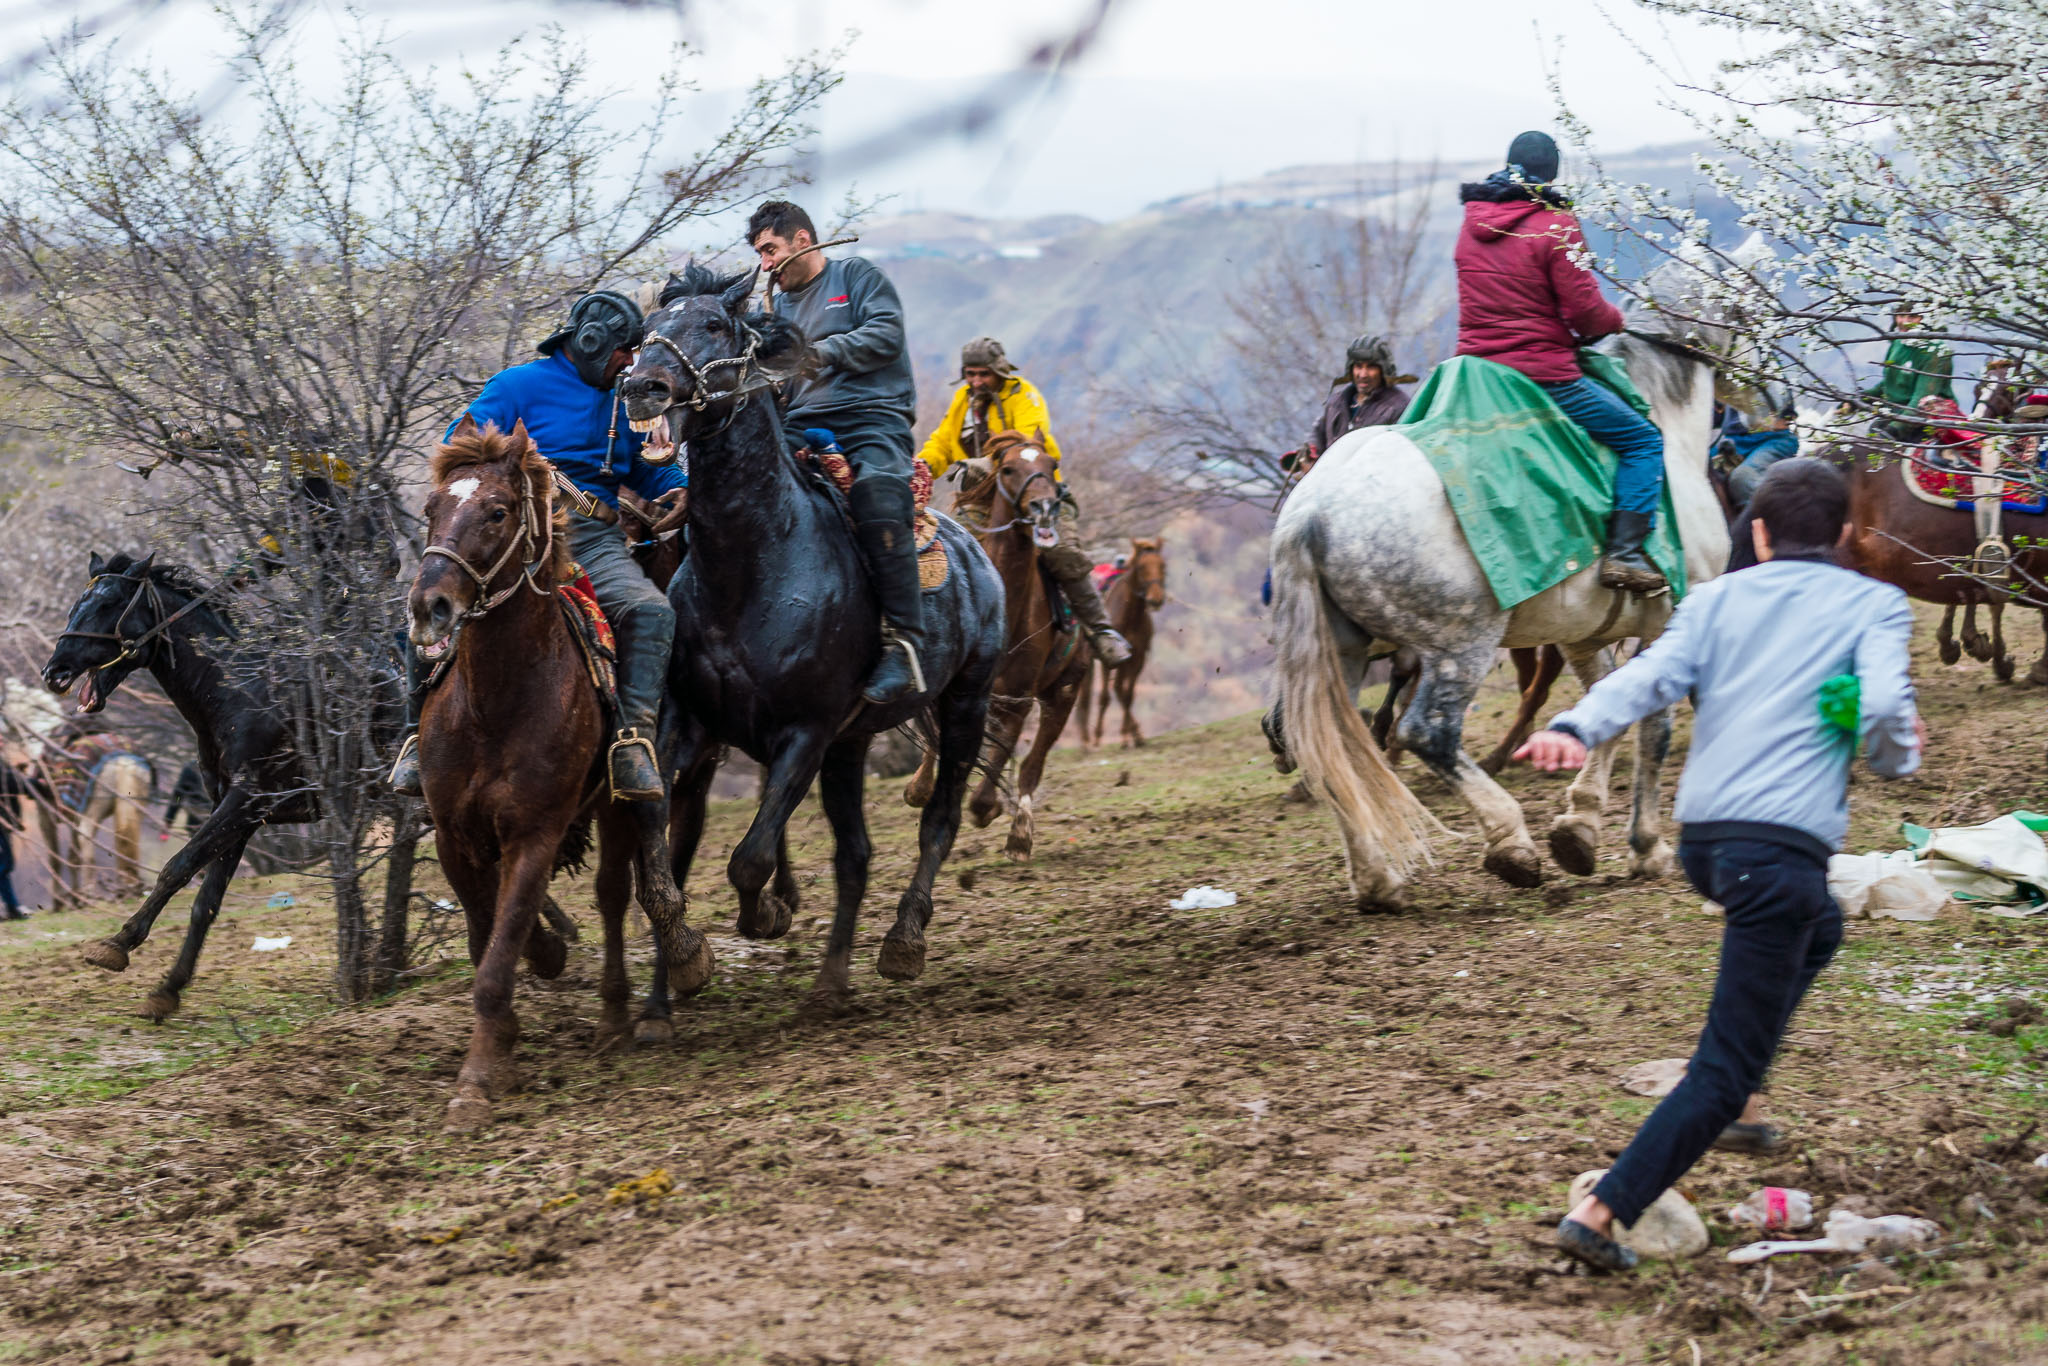 buzkashi-extended-gameplan-fleeing-audience-tajikistan-central-asia